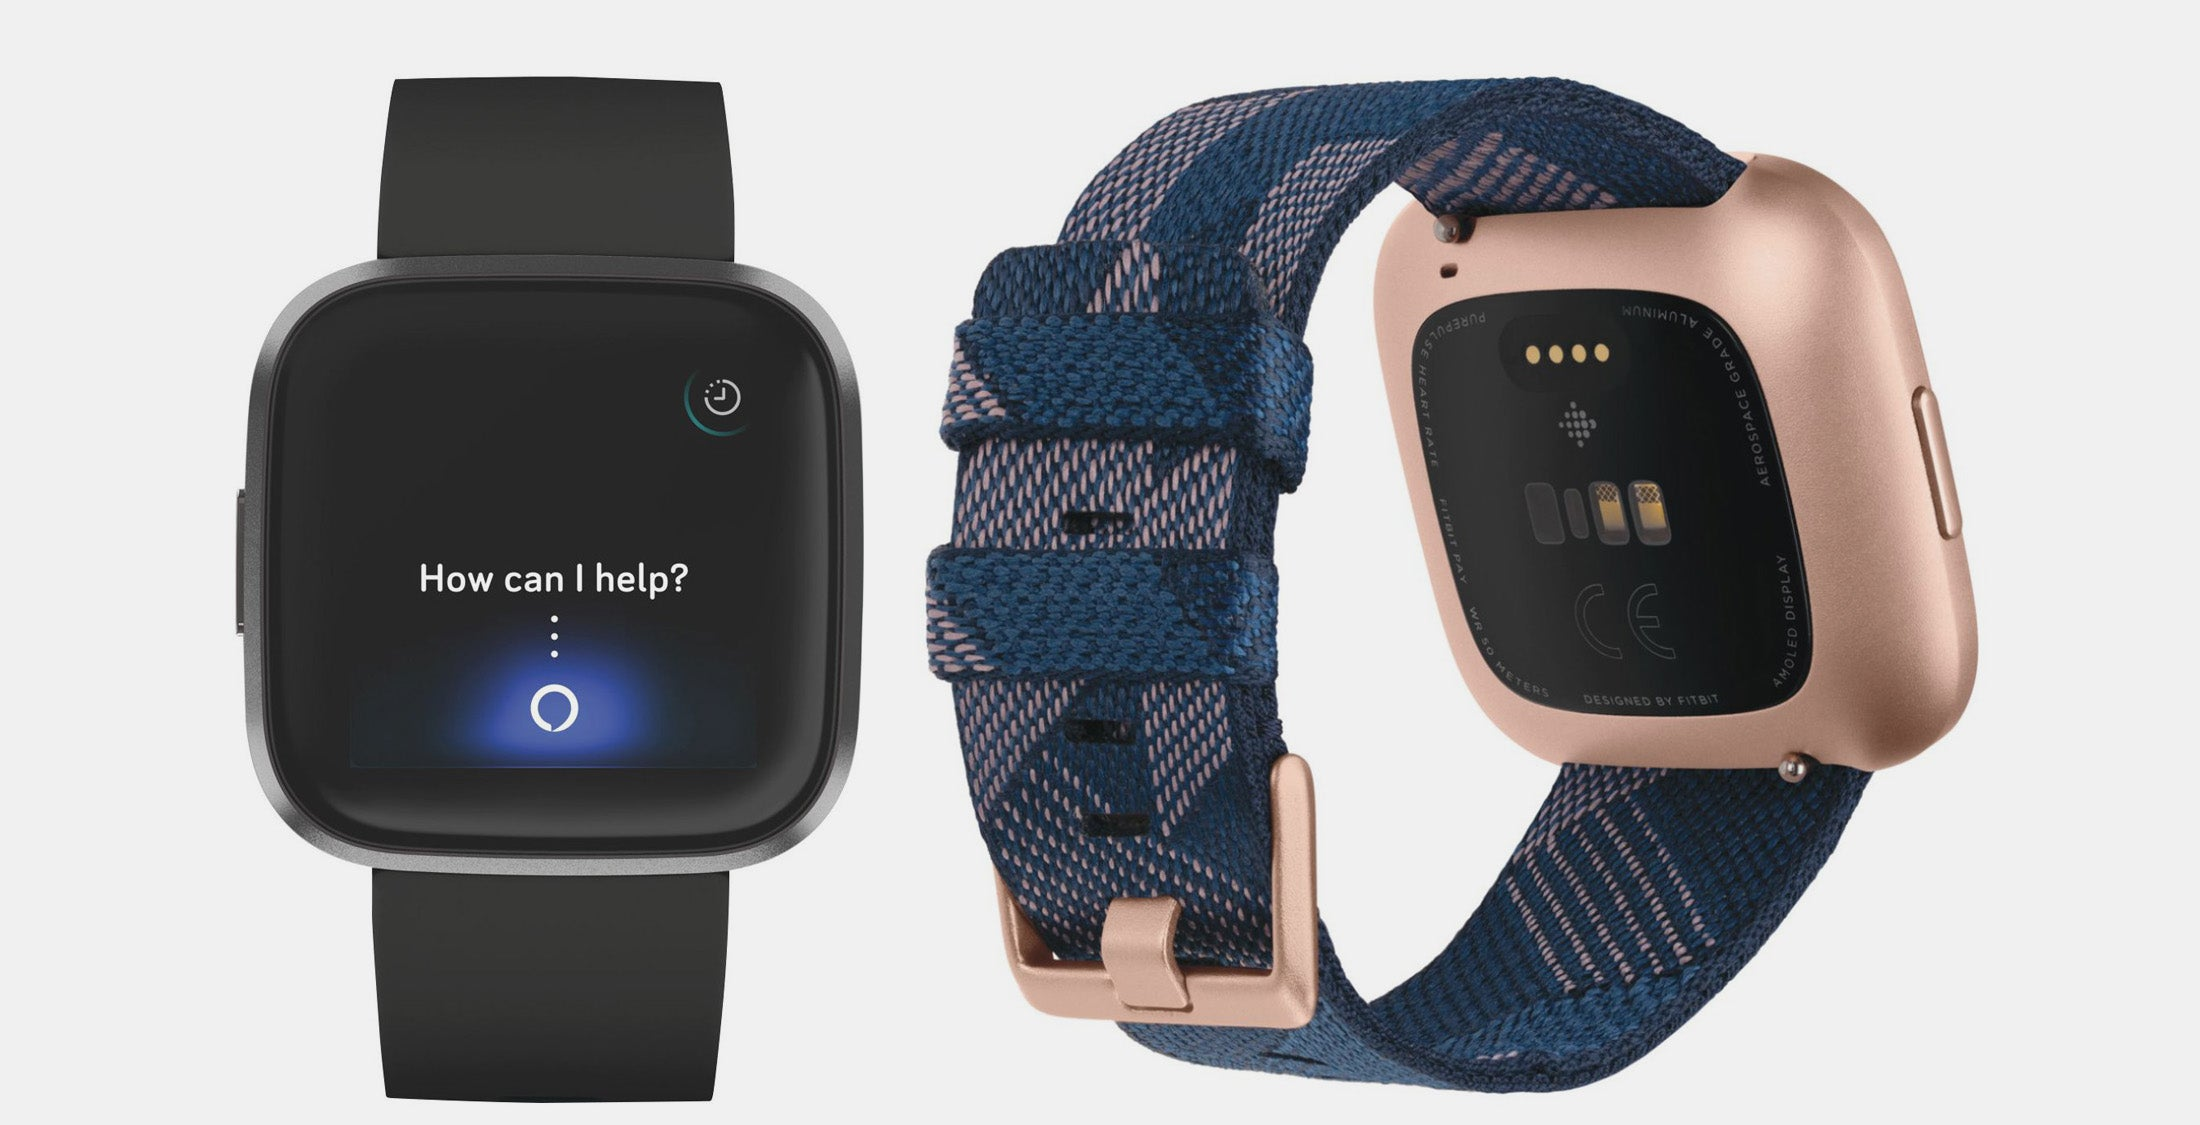 Alexa, which new features are coming to the Fitbit Versa 2?